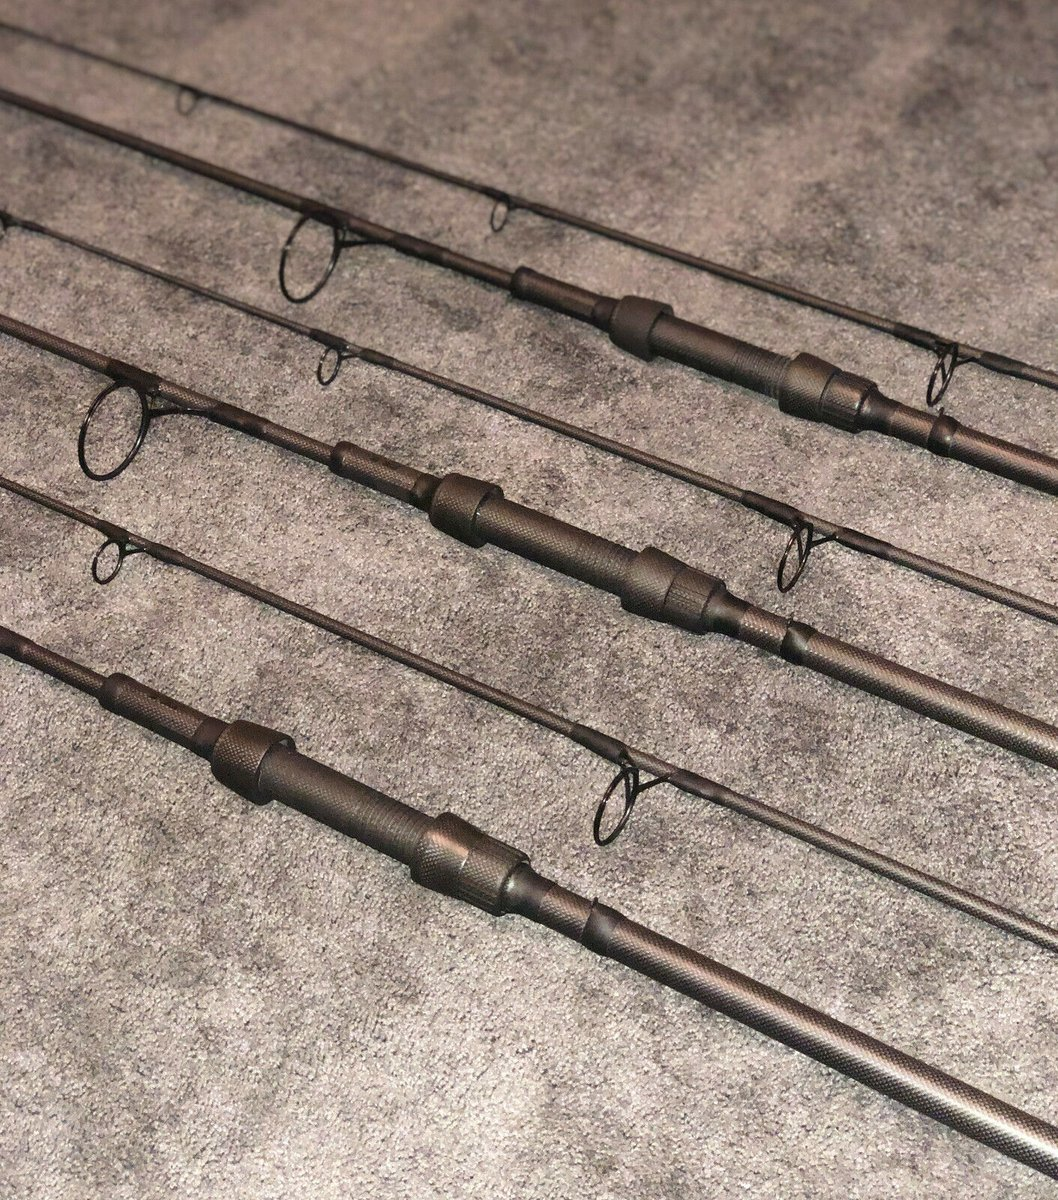 Ad - Nash Scope Black Ops Mk1 9ft 3lb Carp Rods x3 On eBay here -->> https://t.co/GolUuQ0hCv